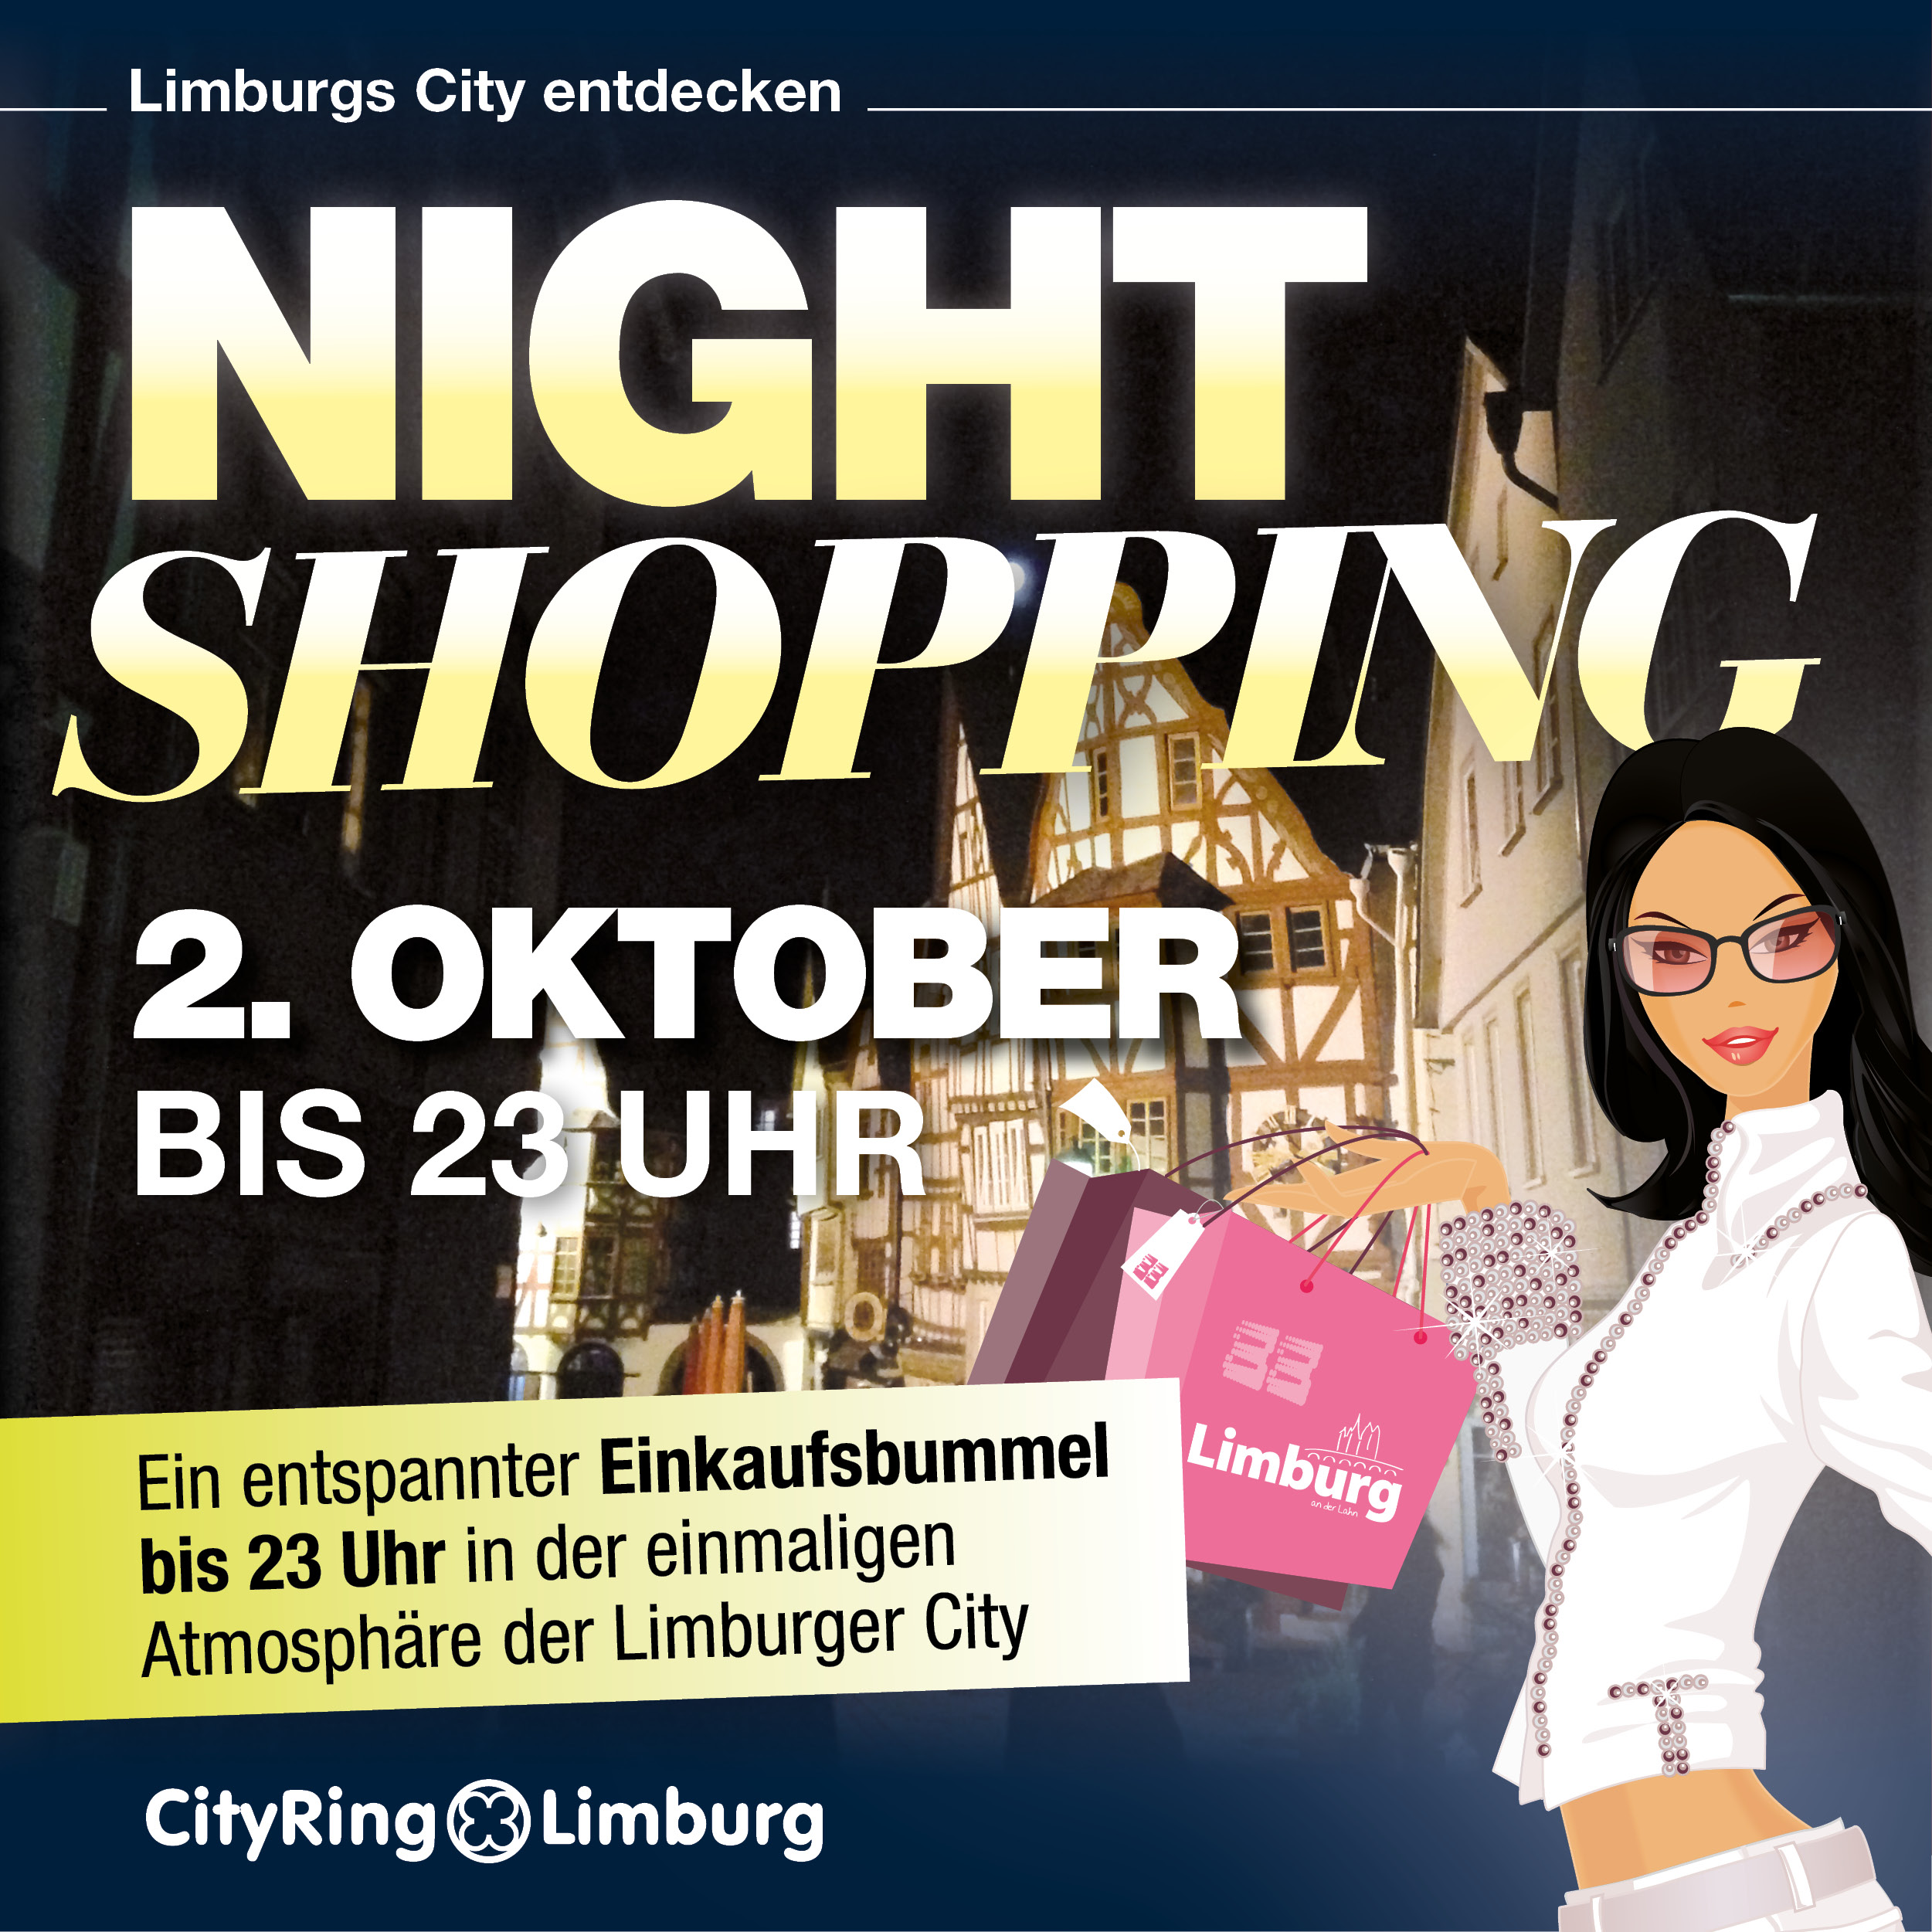 latenight shopping in limburg am 2 oktober 2015 cityring limburg. Black Bedroom Furniture Sets. Home Design Ideas